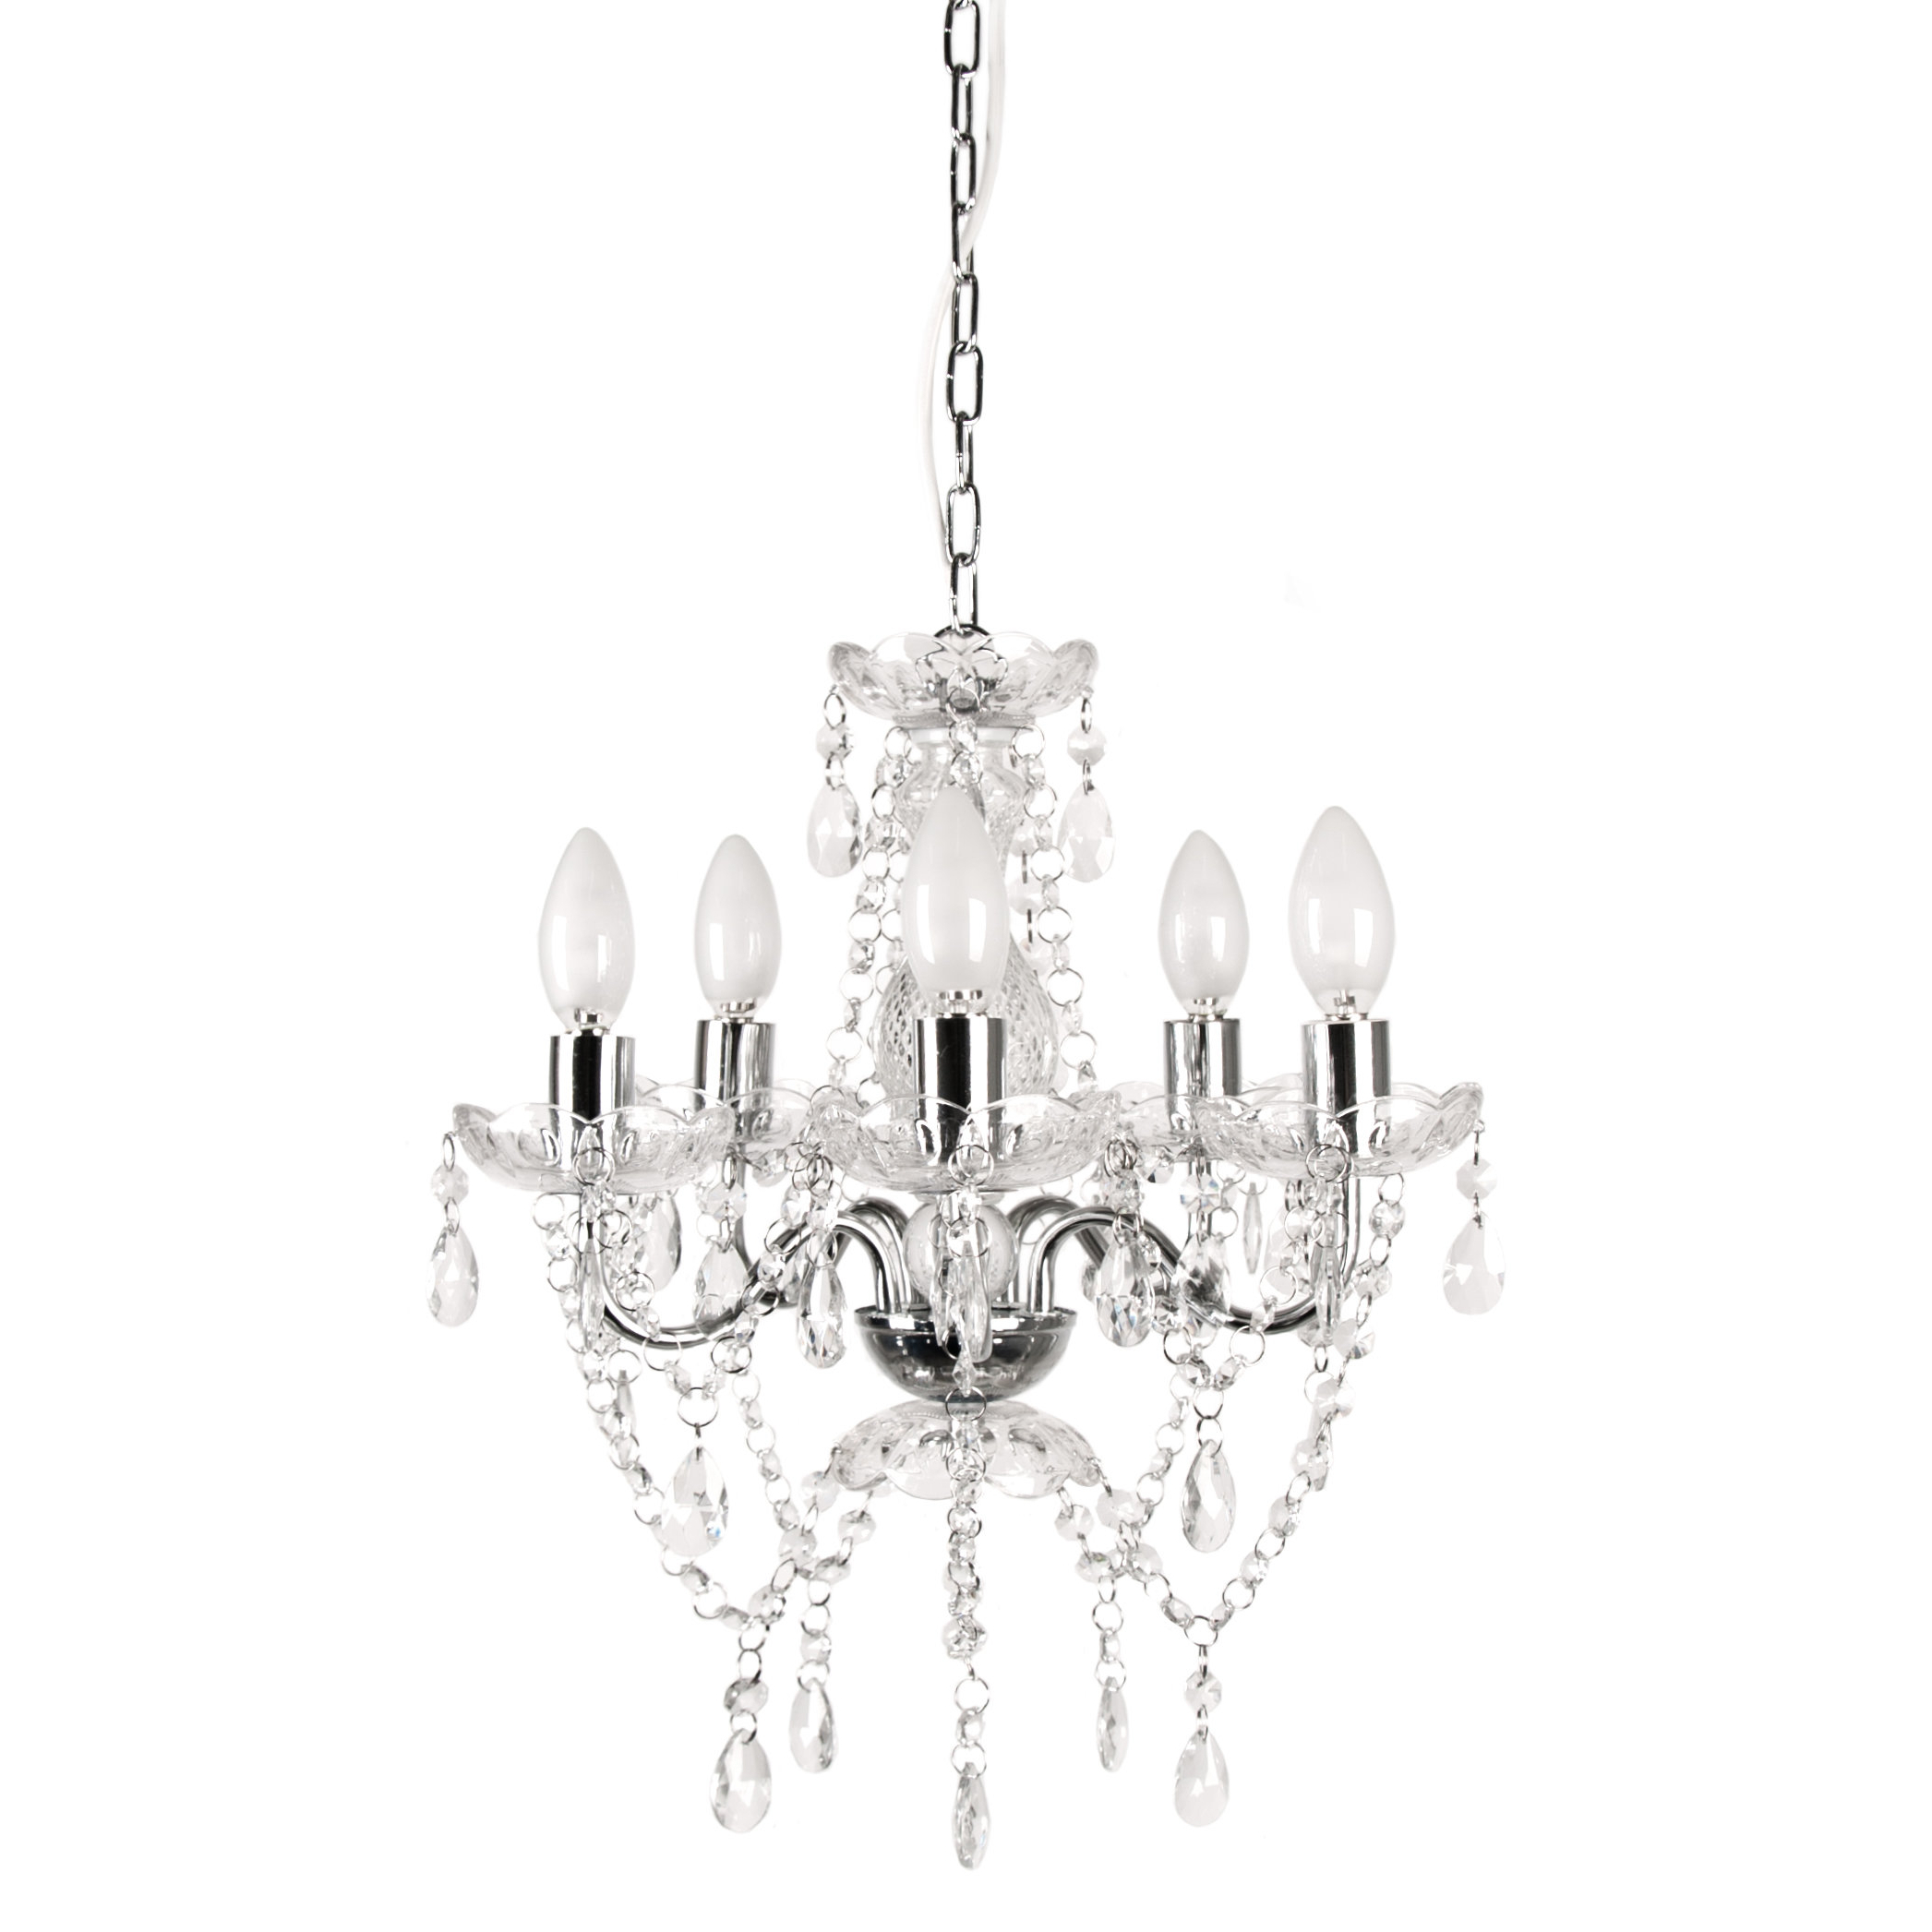 Blanchette 5-Light Candle Style Chandeliers intended for Favorite 5-Light Candle Style Chandelier